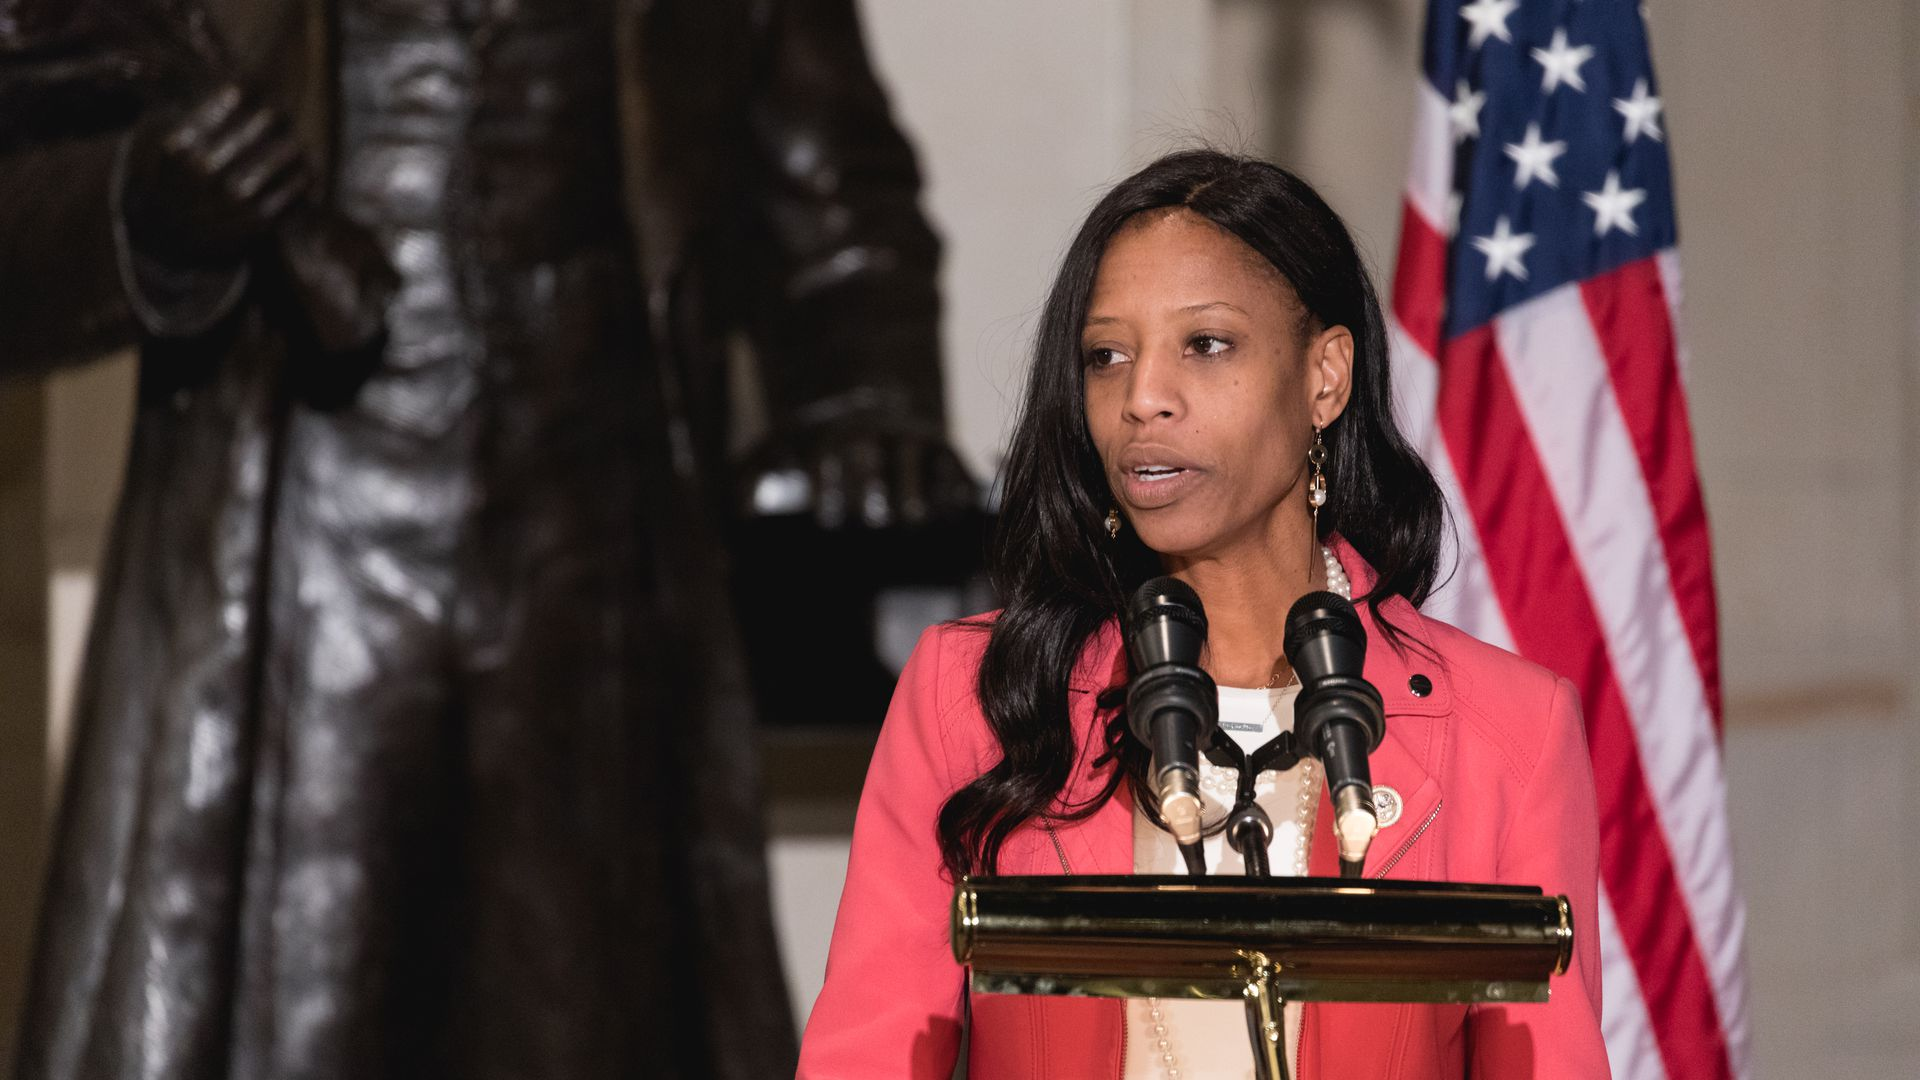 Mia Love before an American flag at a podium speaks.